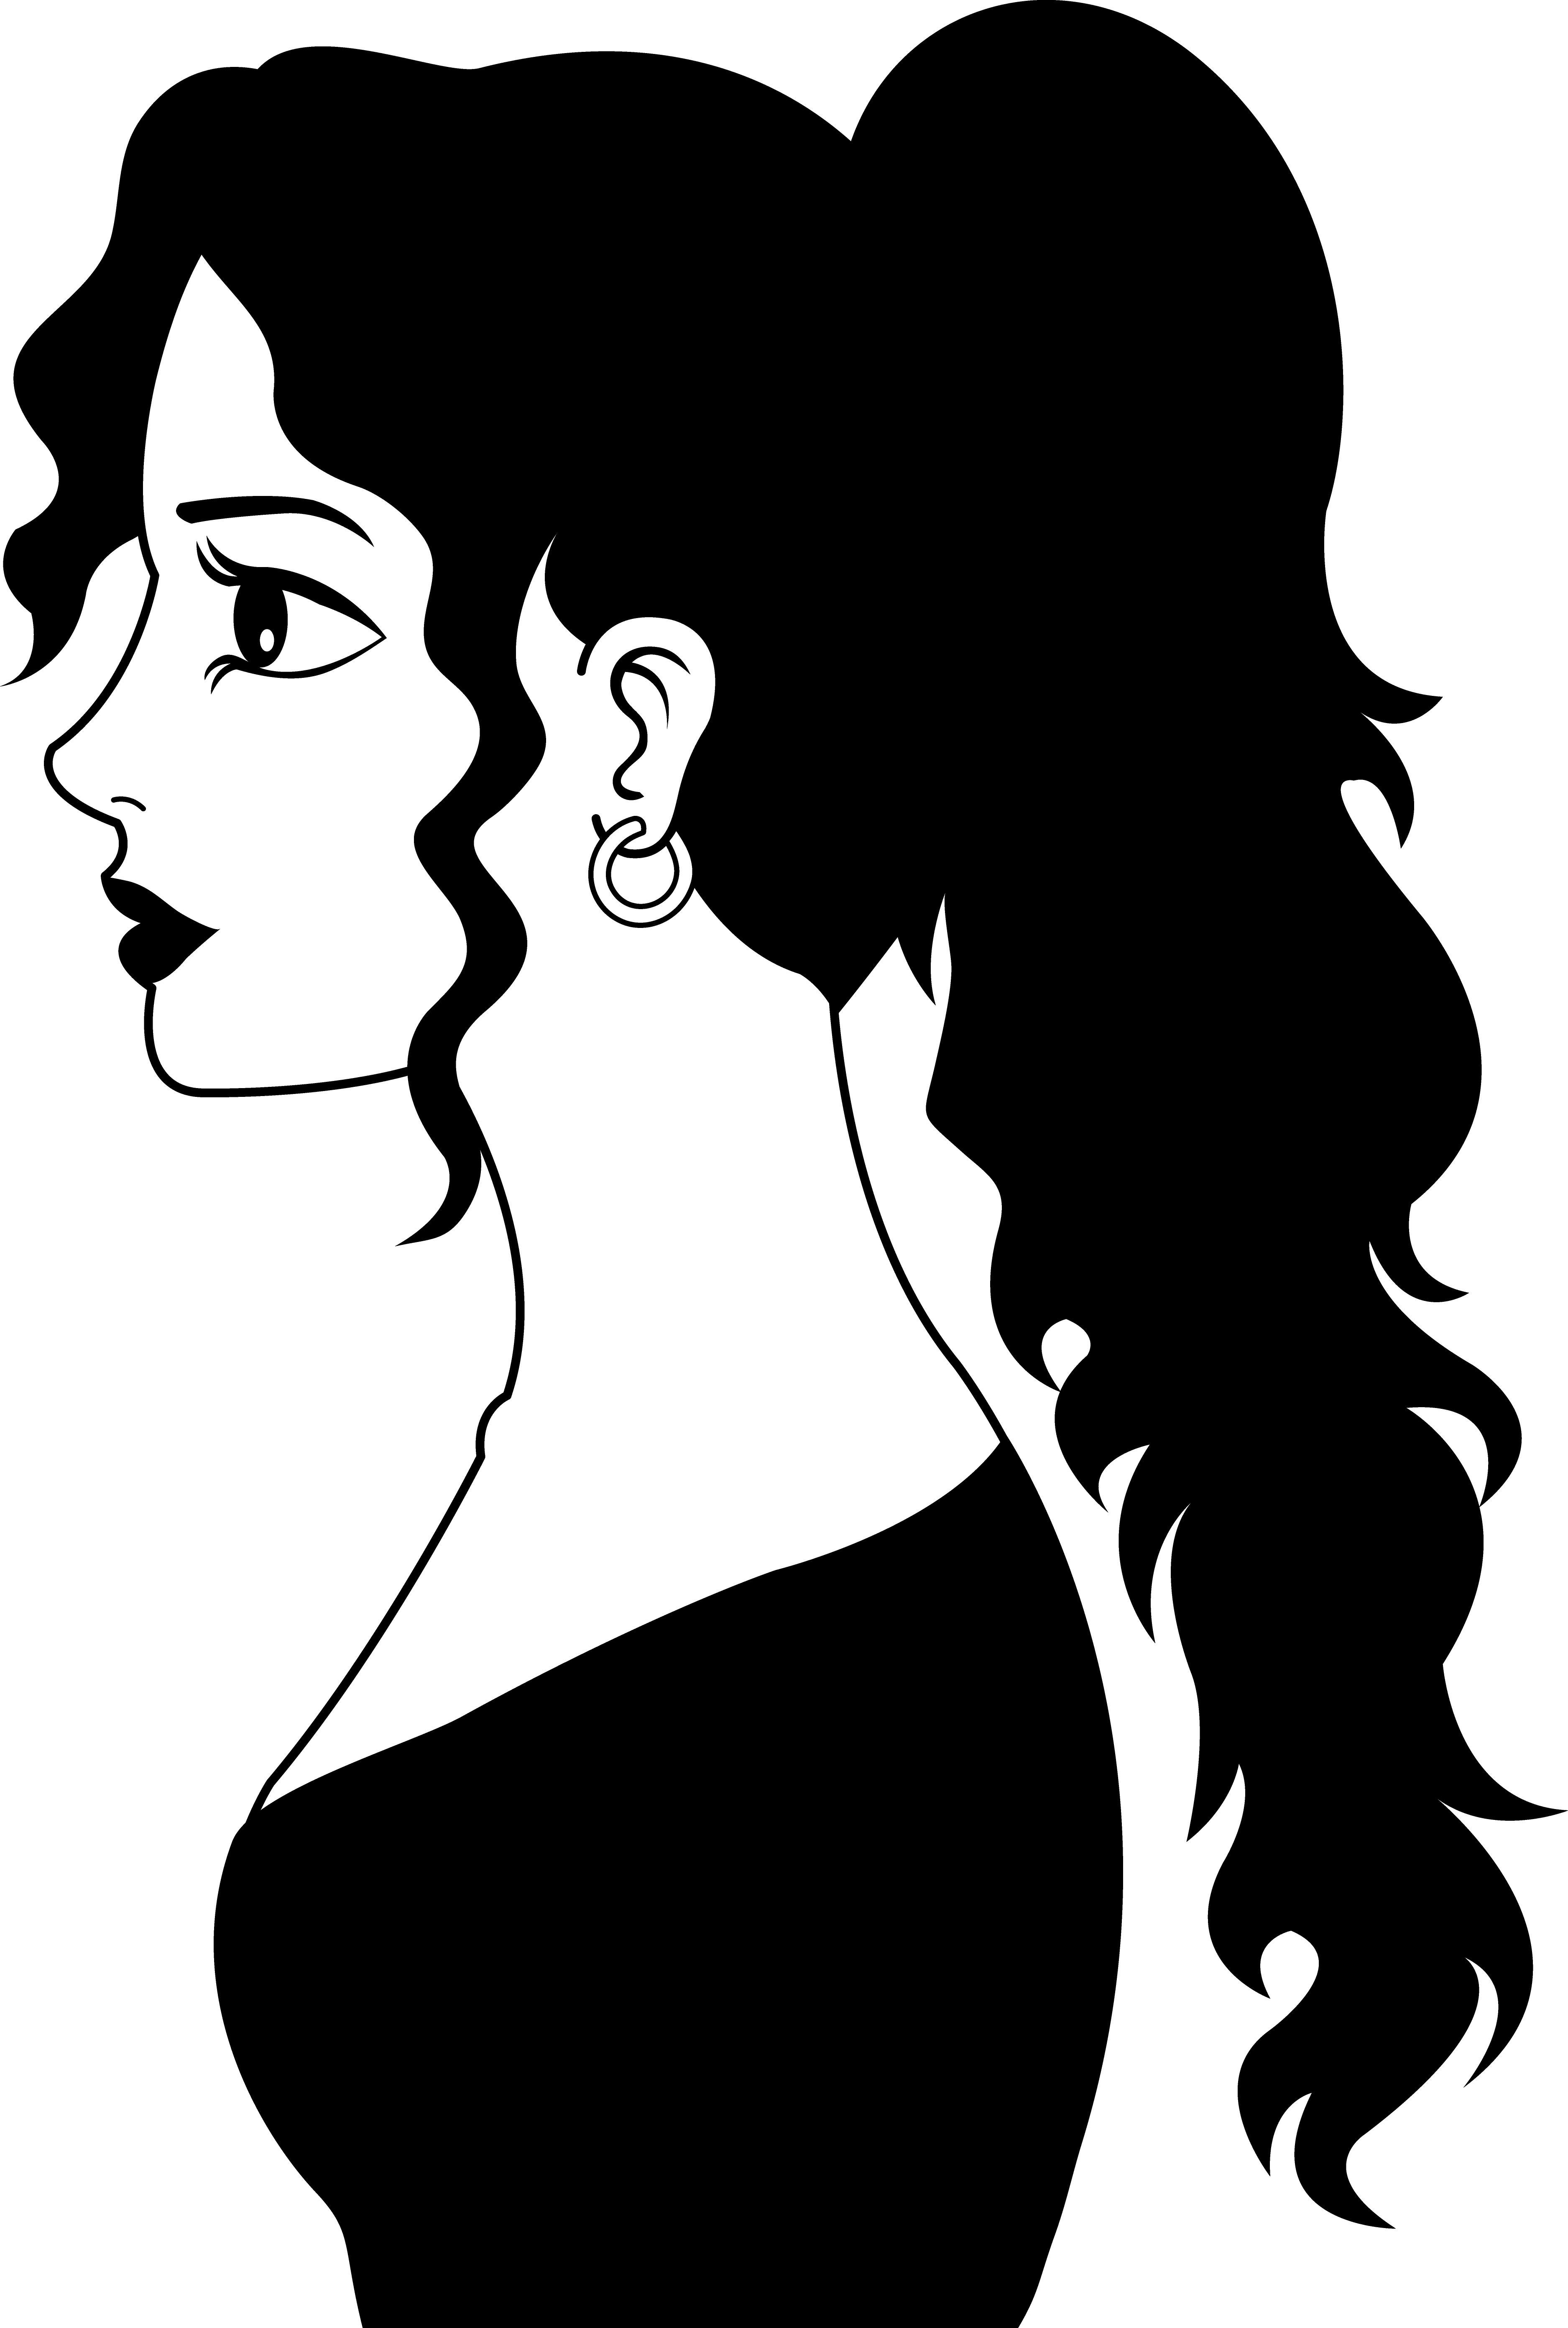 Woman Face Line Drawing Png : Female side profile drawing at getdrawings free for